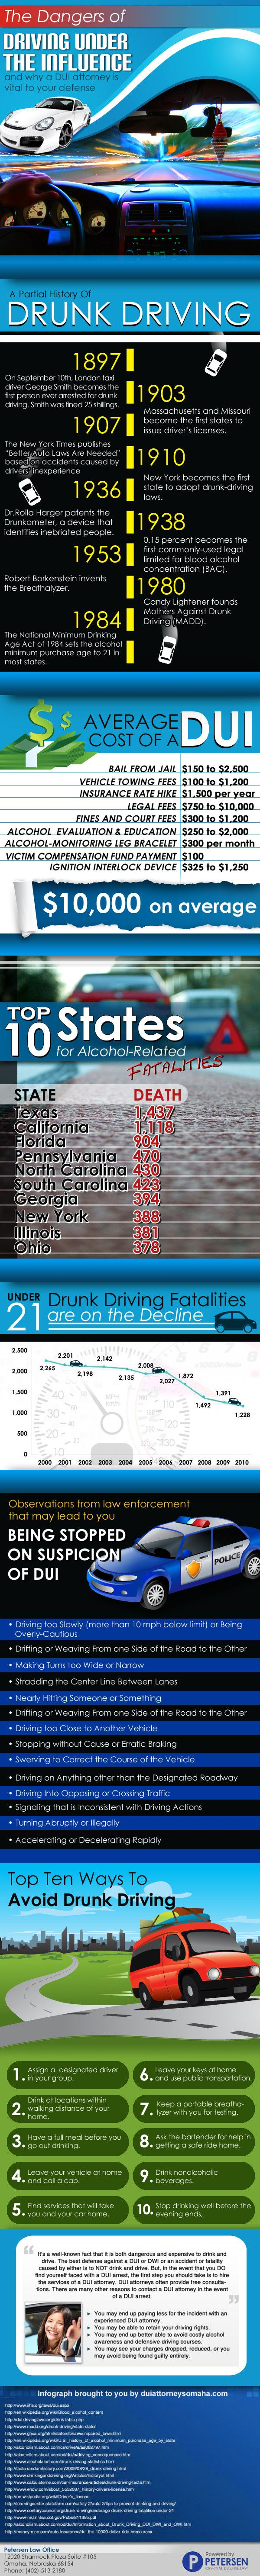 "a prevention of driving under influence of alcohol • over 14 million drivers were arrested for driving under the influence of alcohol or centers for disease control and prevention, ""impaired driving."